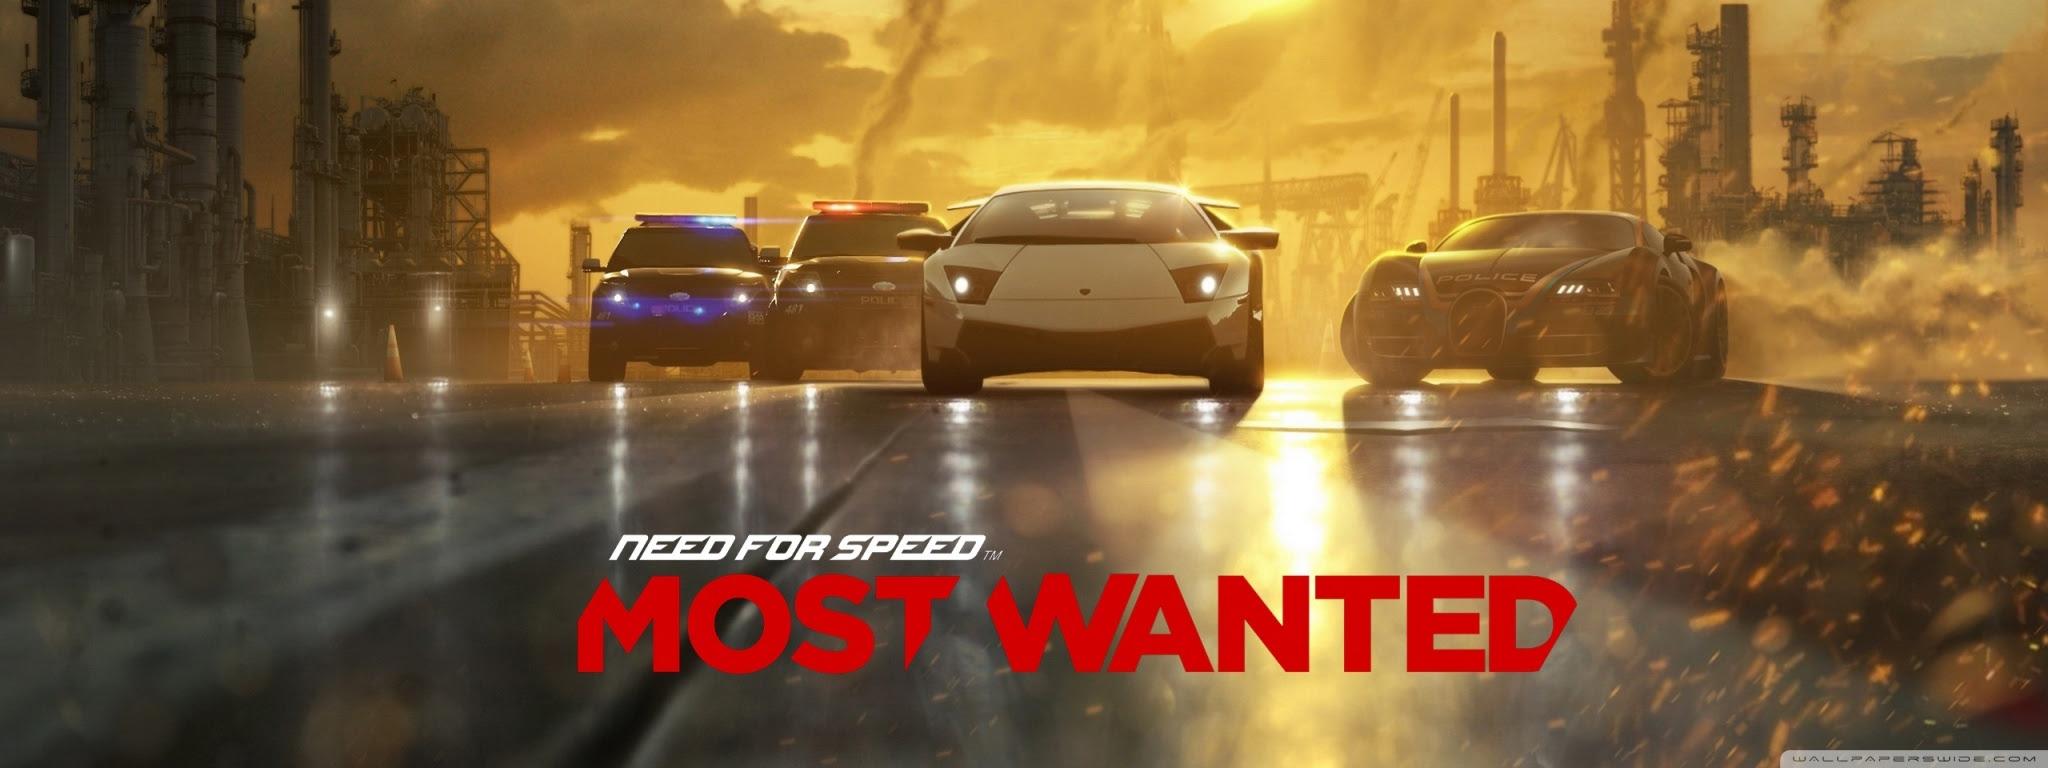 Need For Speed Most Wanted 2012 Ultra Hd Desktop Background